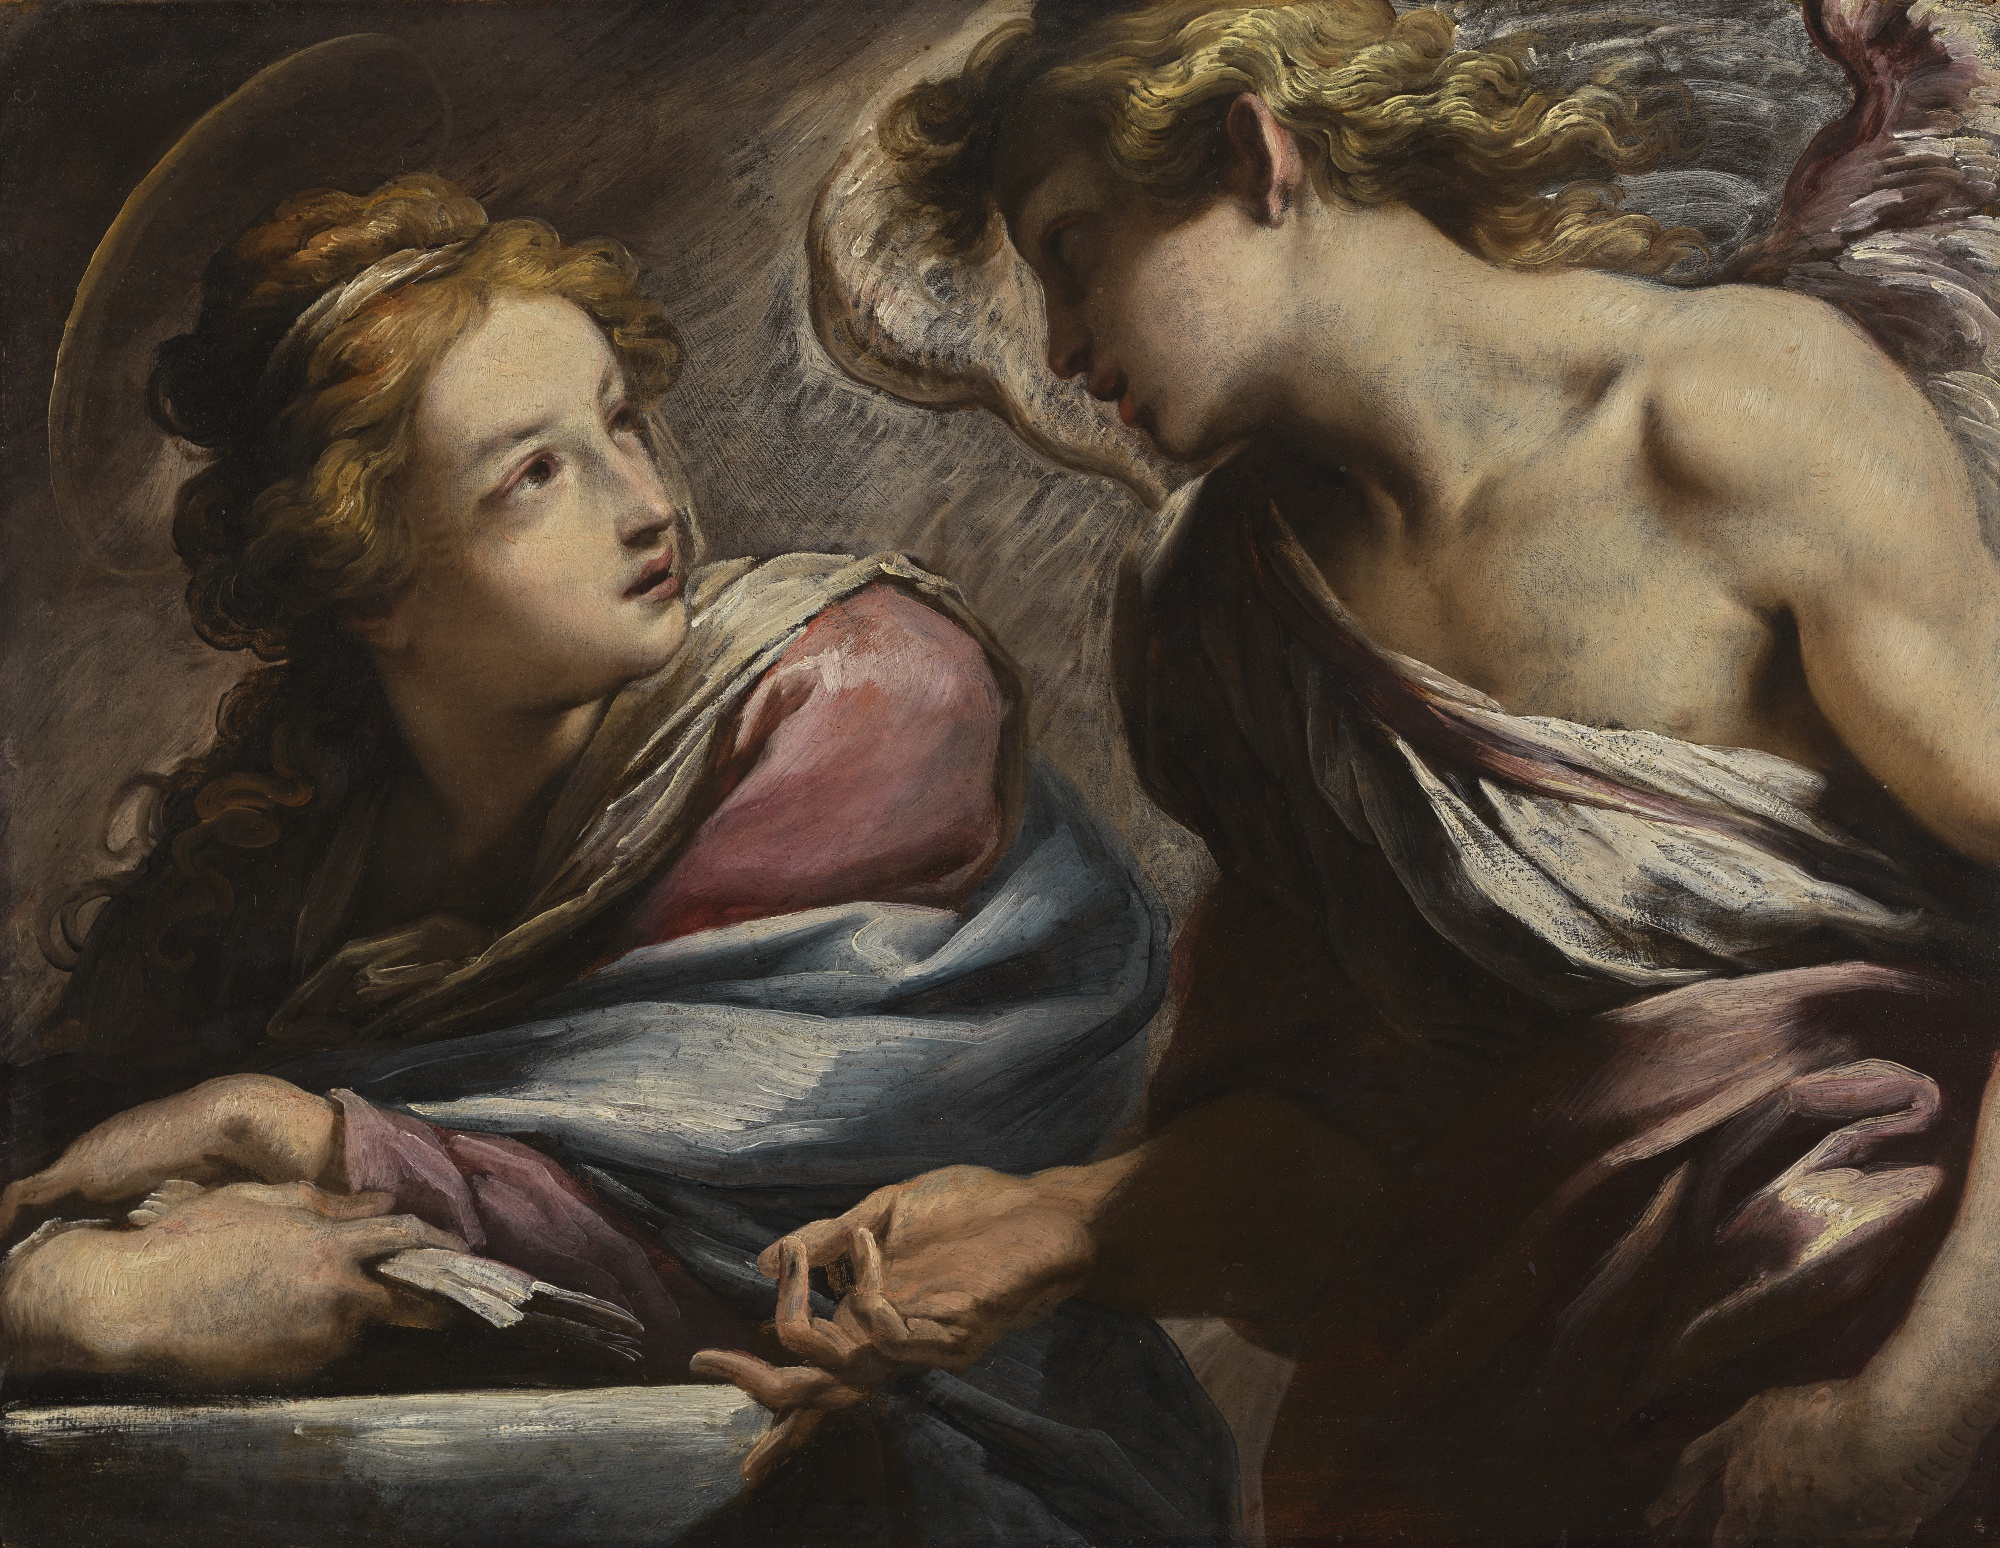 The Annunciation, by Daniele Crespi